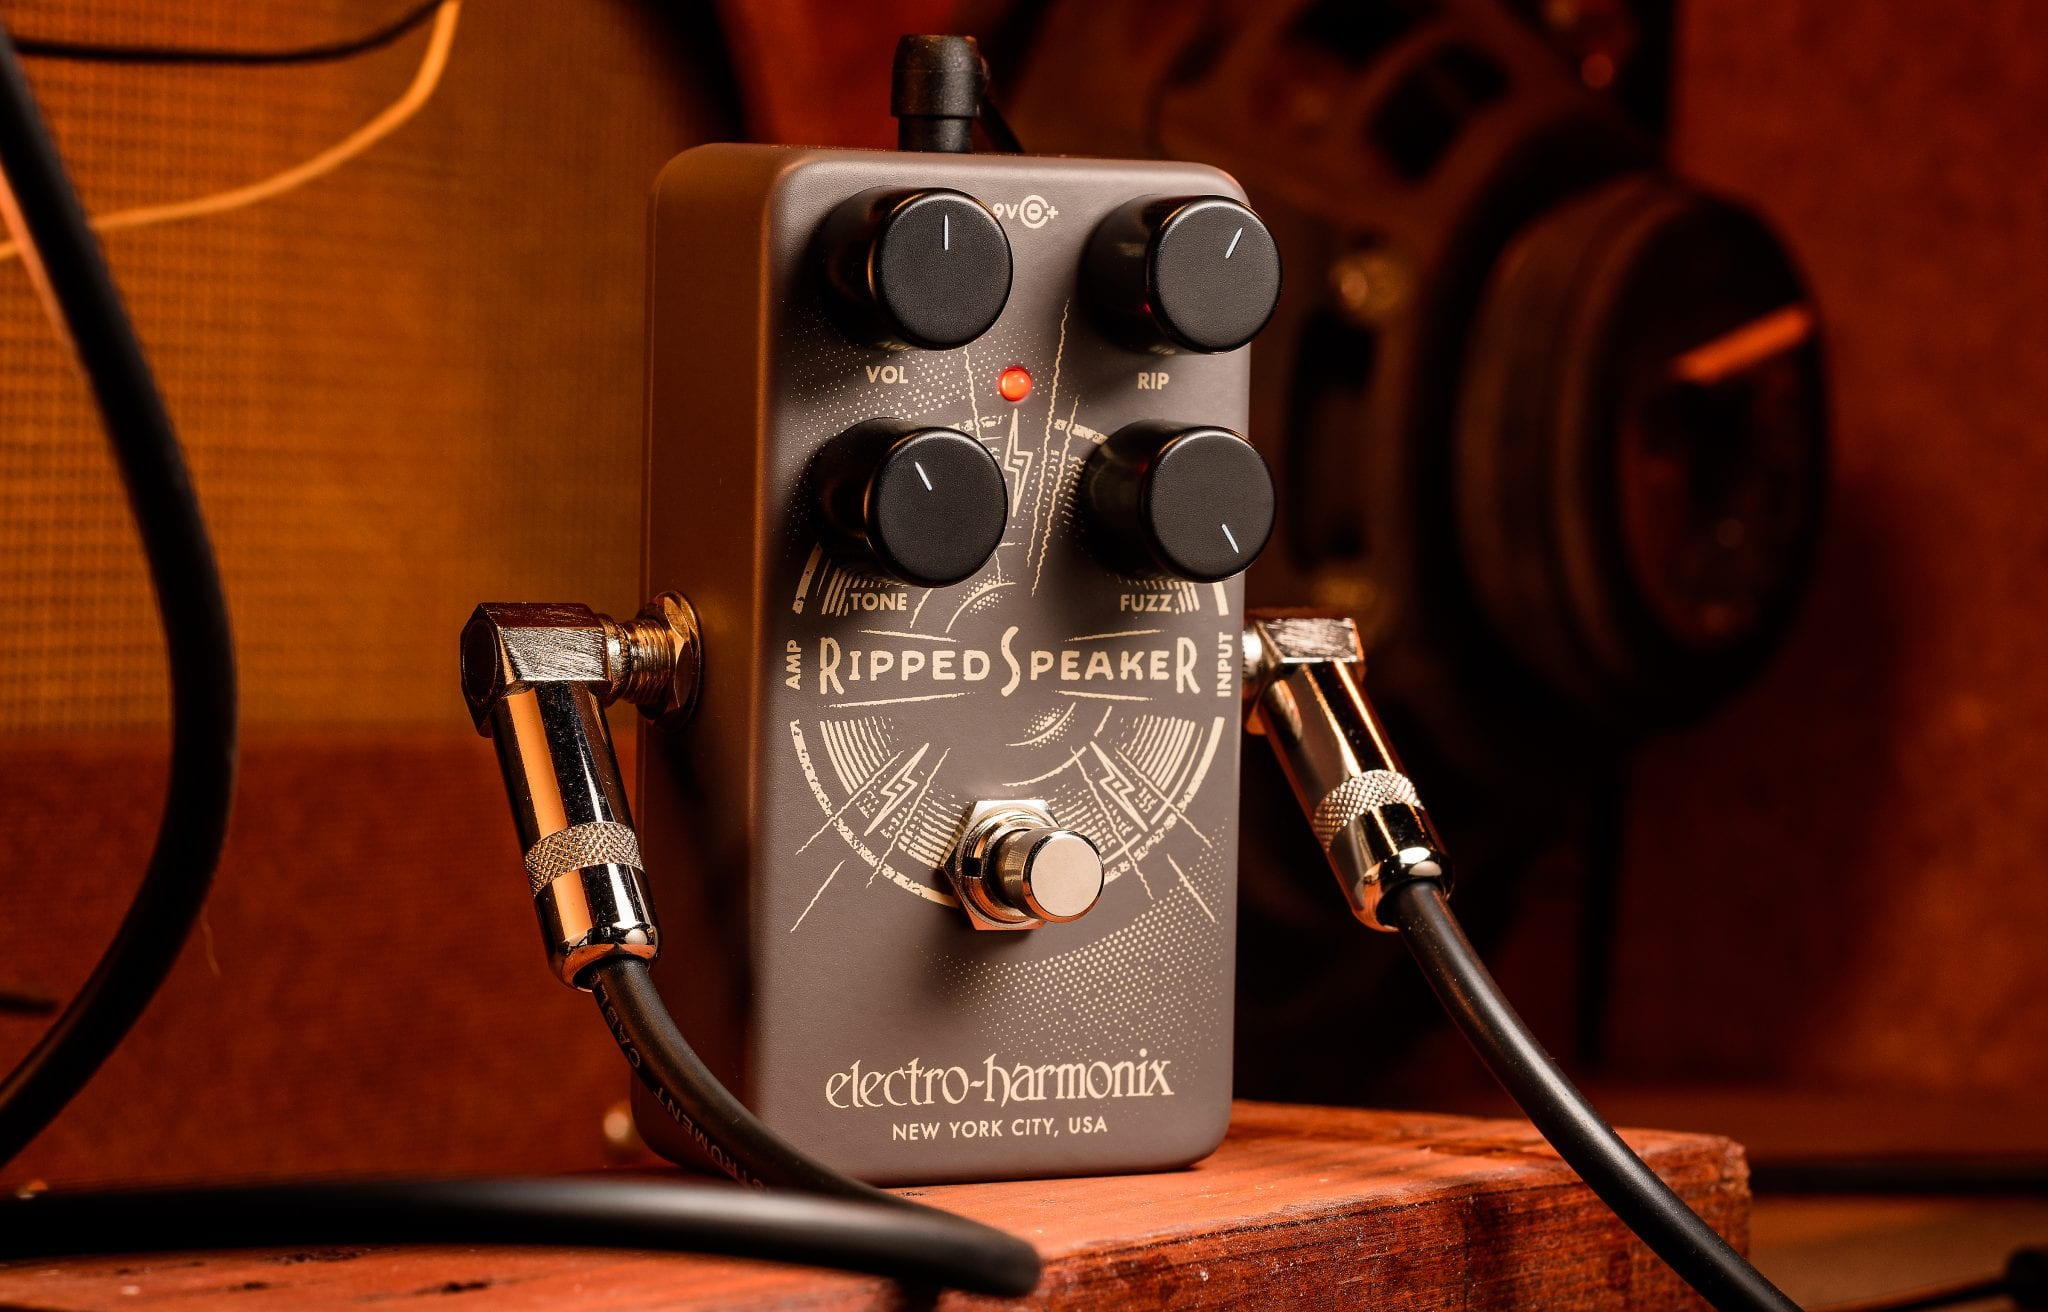 Electro-Harmonix Introduces The Ripped Speaker Fuzz Pedal